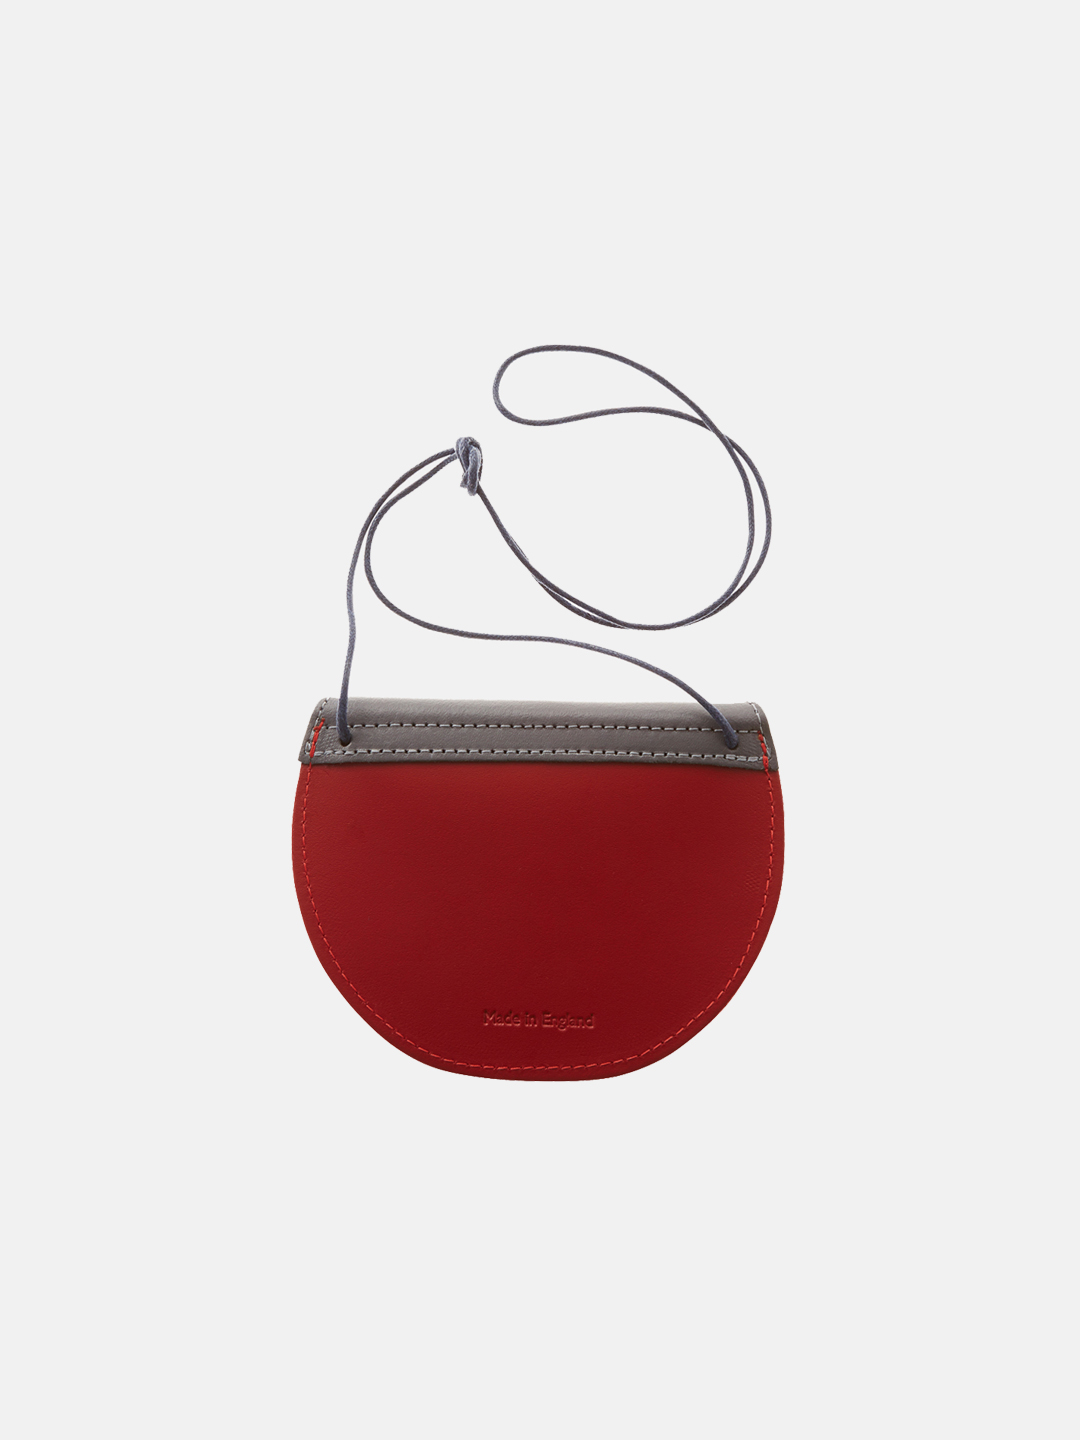 Pippin Purse - Stone Grey and Cherry Red